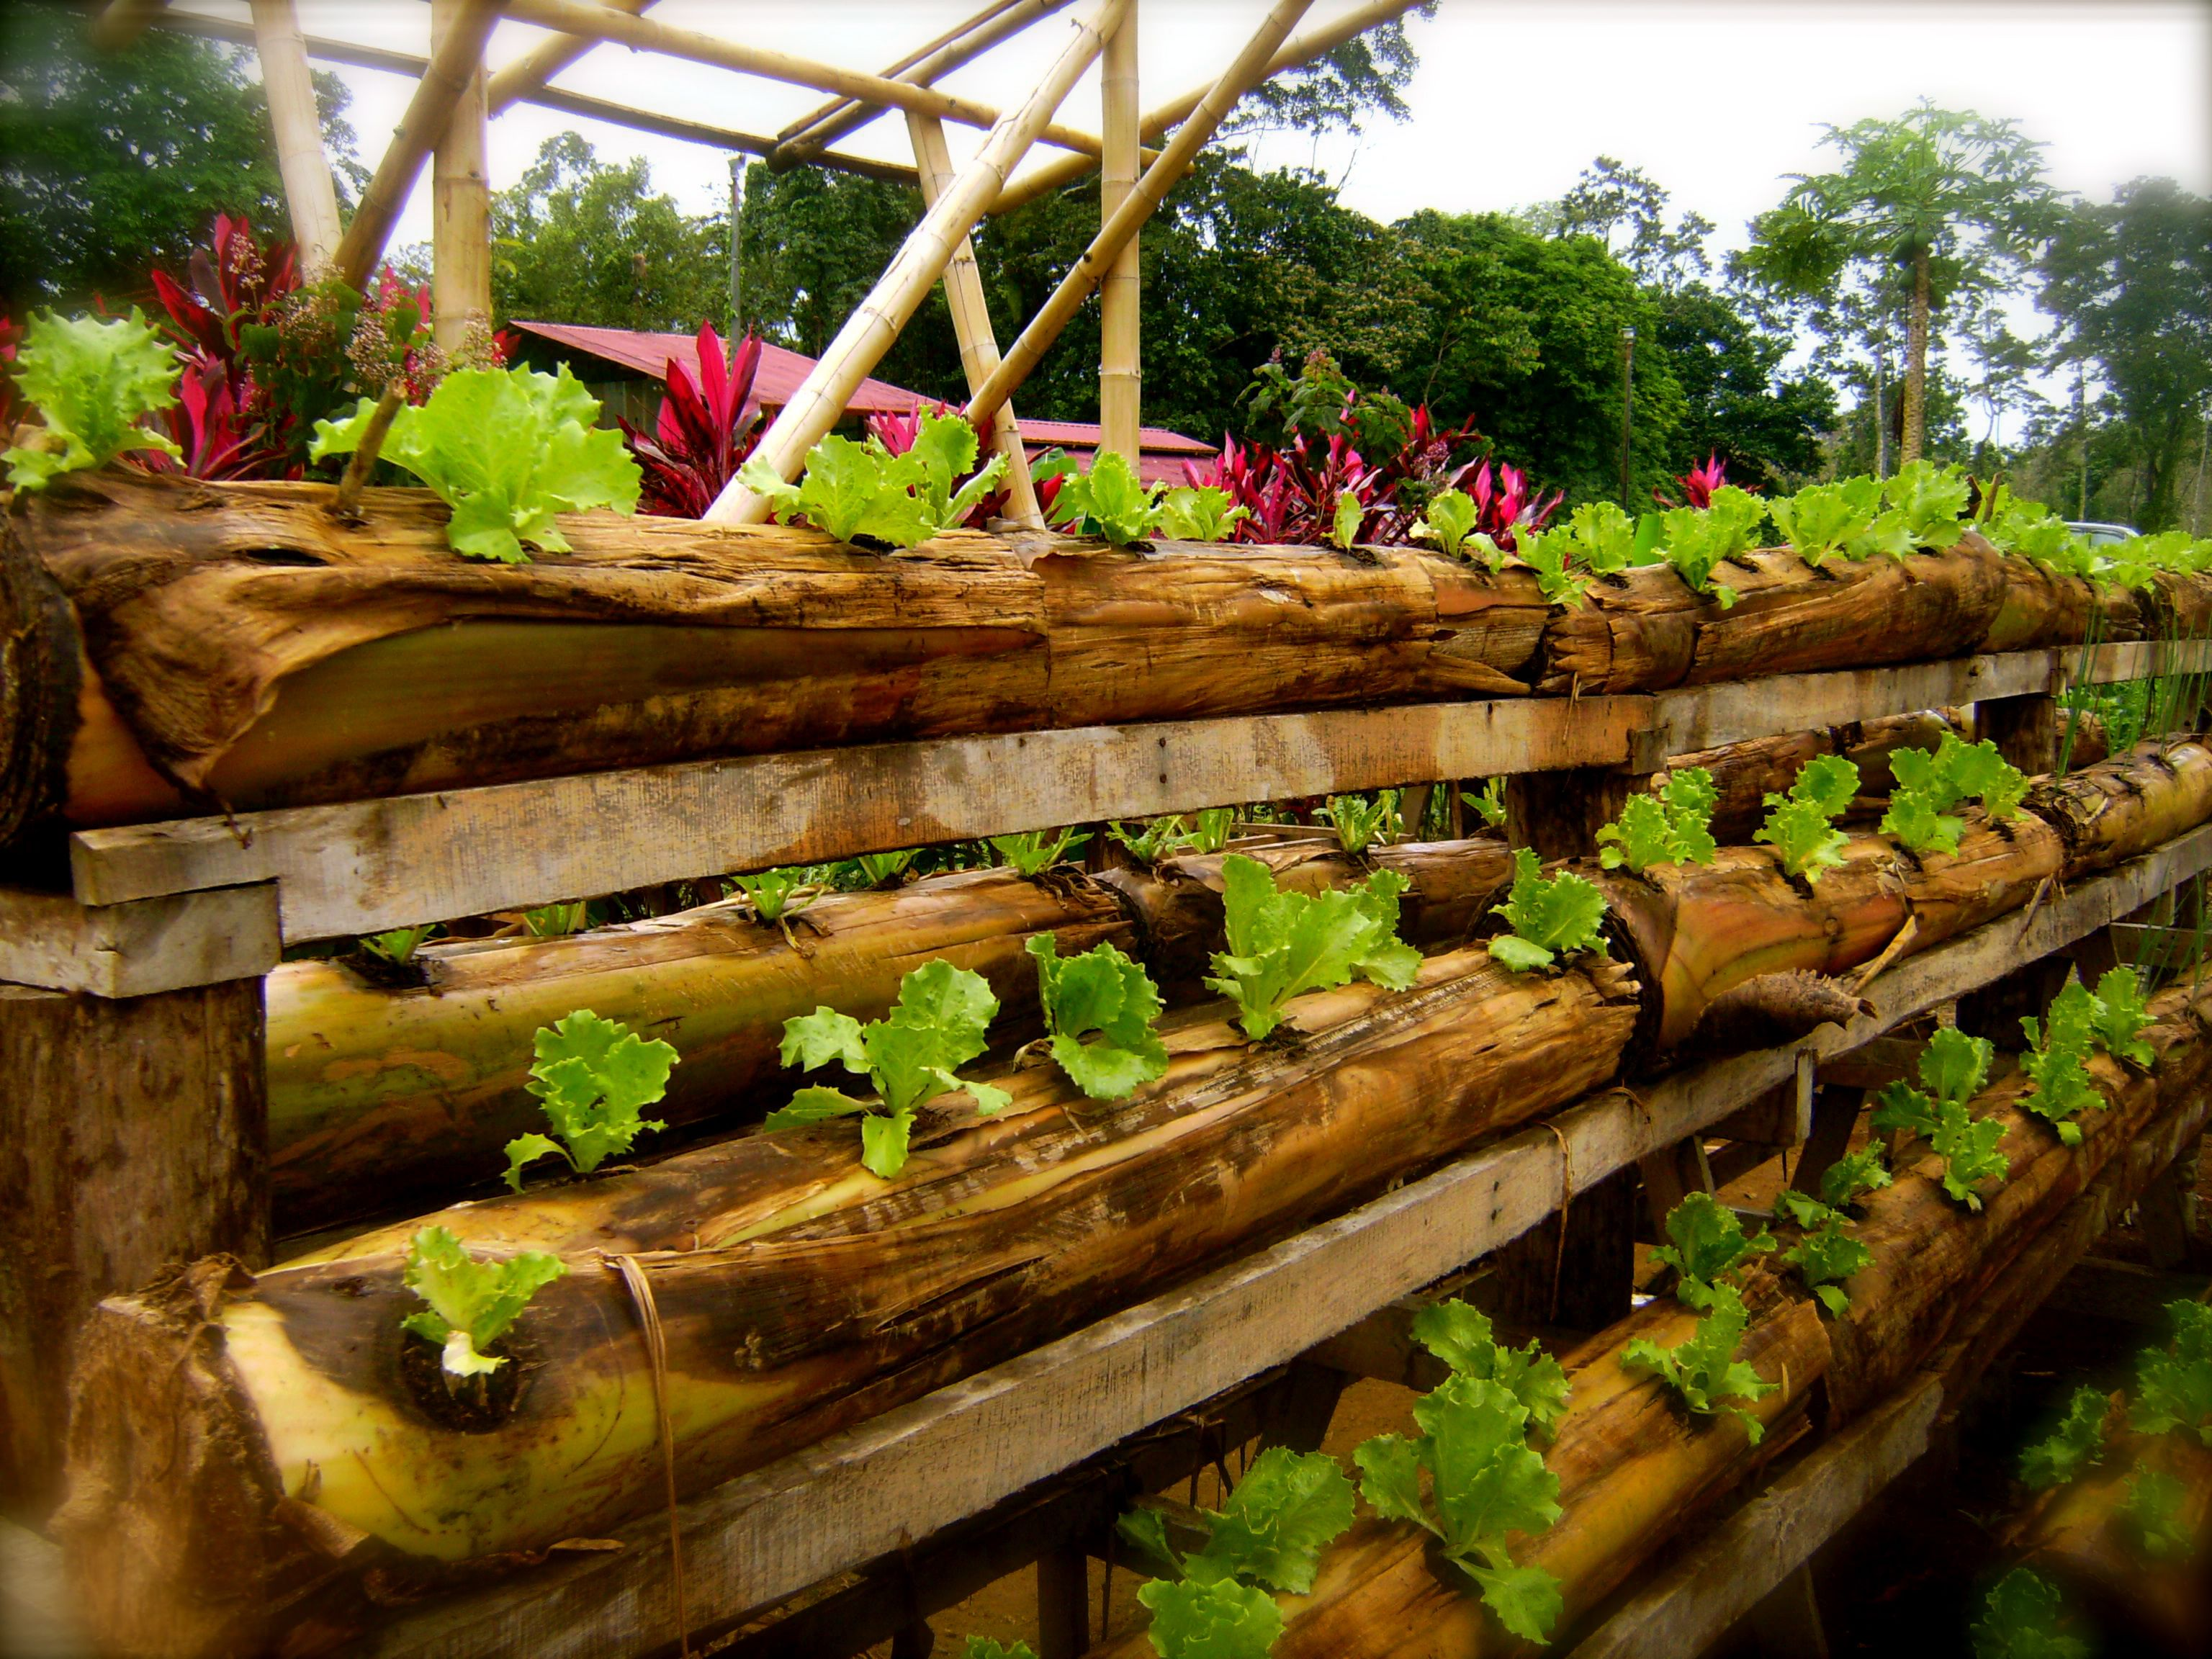 hydroponics bamboo - Google Search | Creative Homes & Projects ...